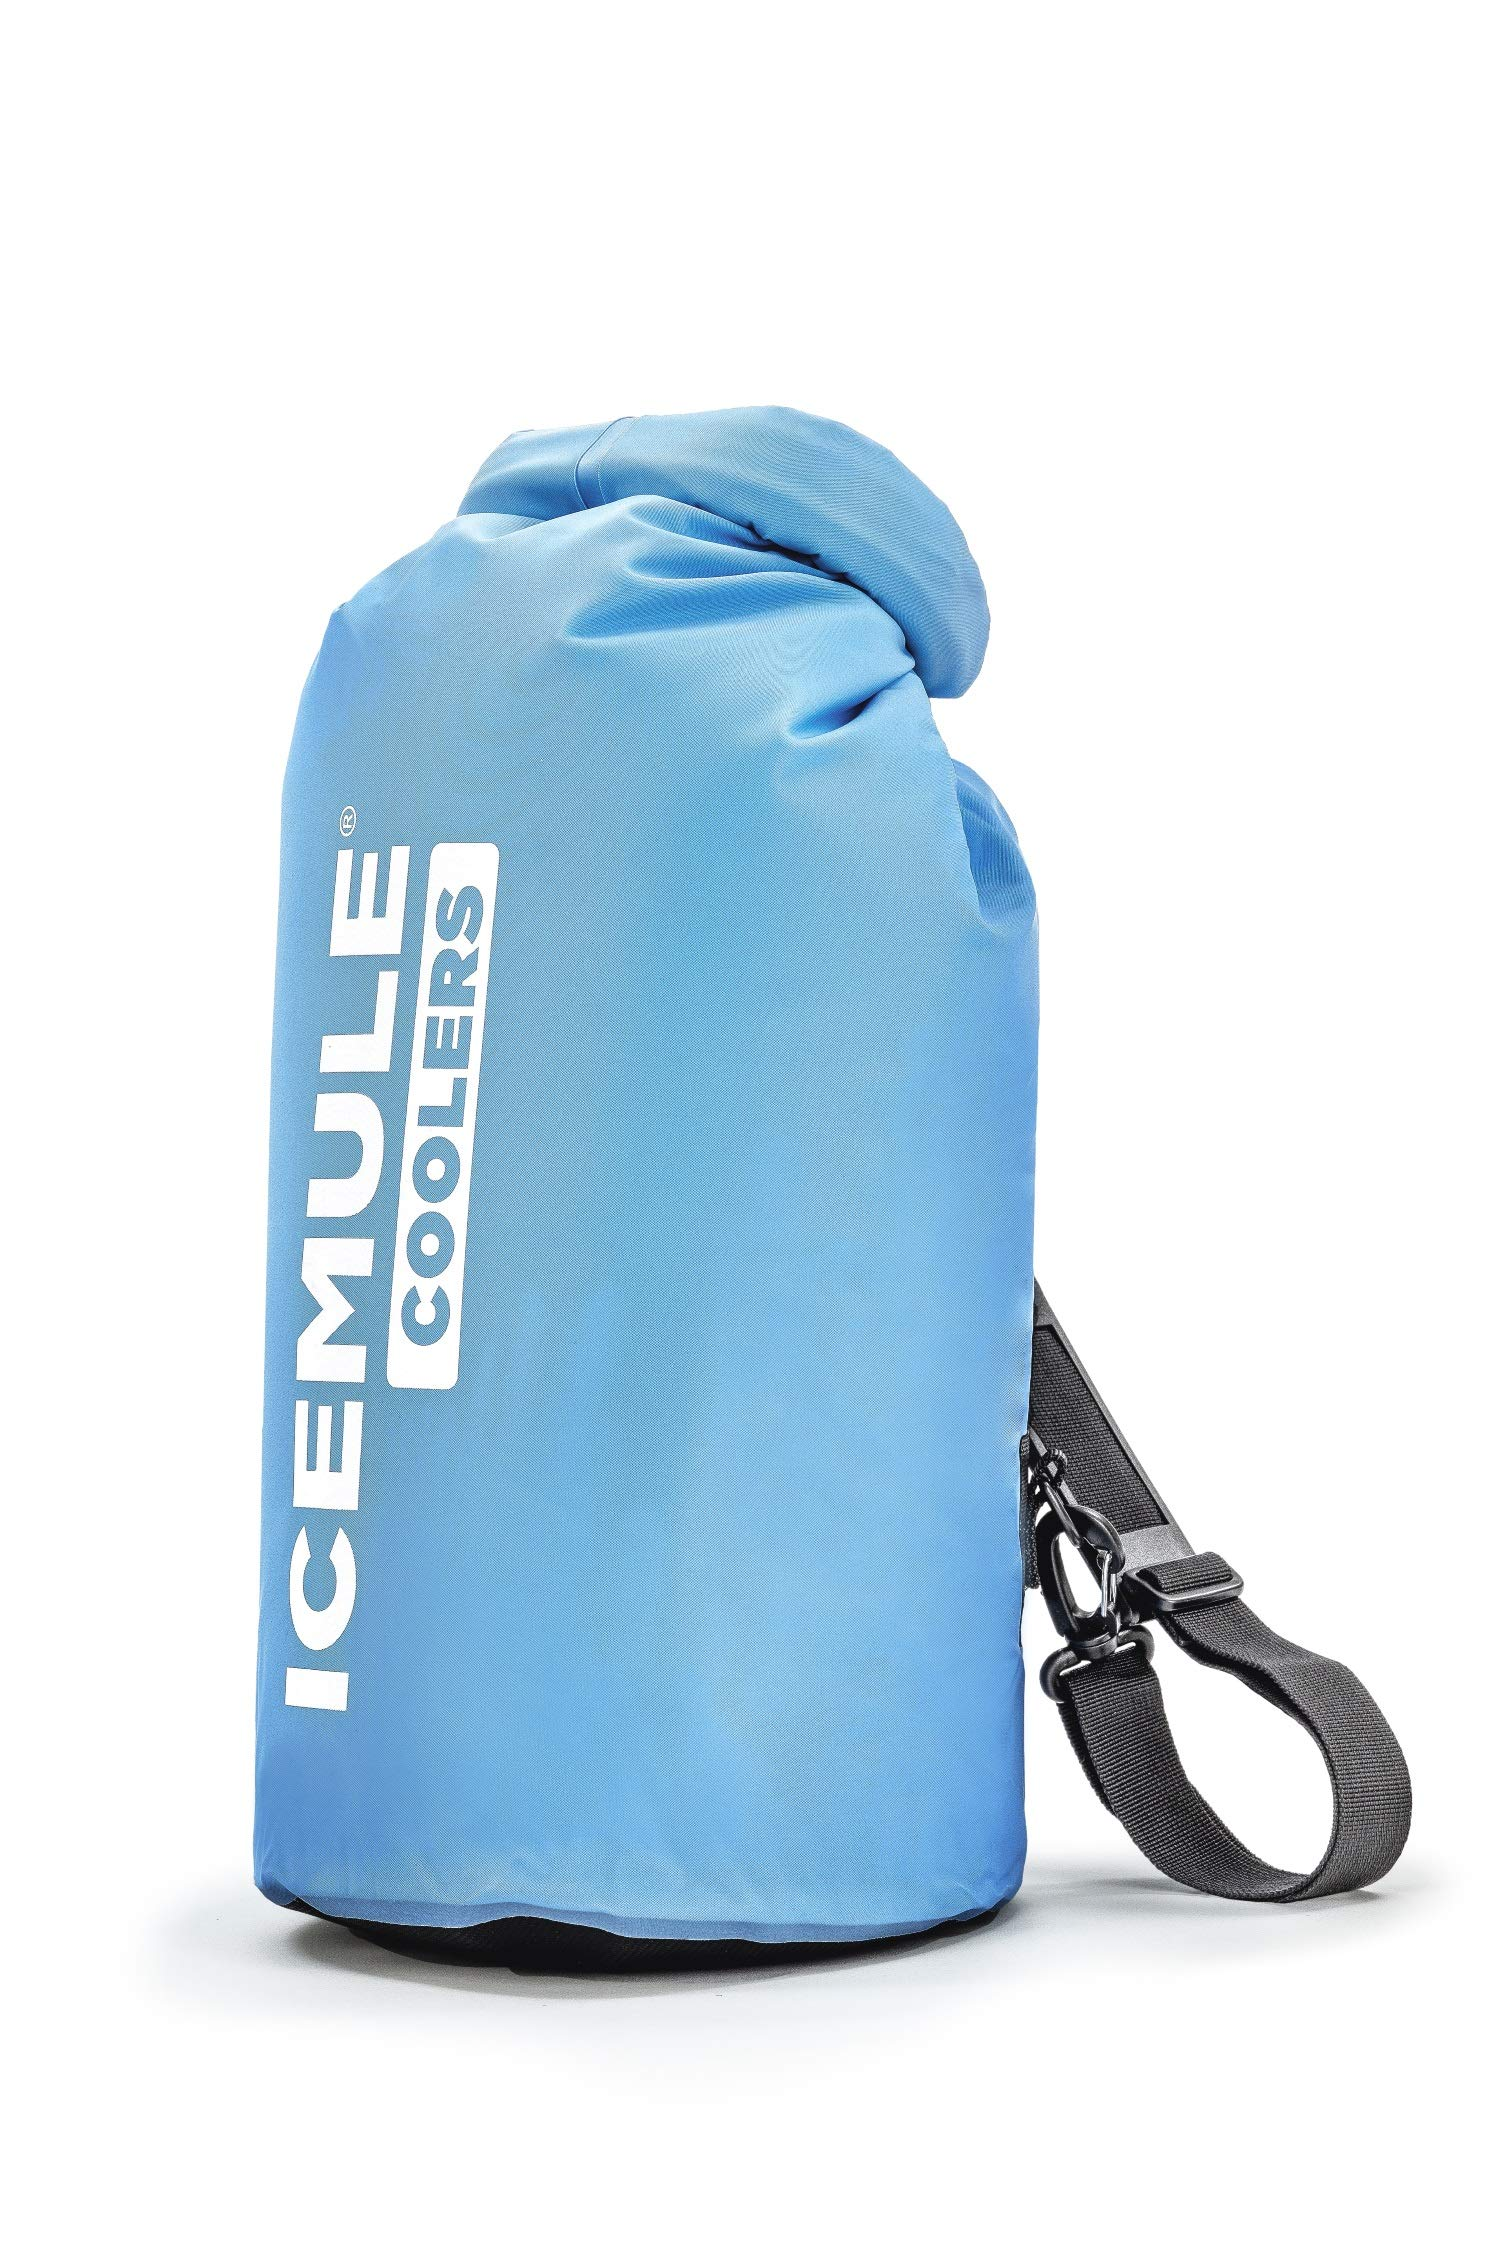 IceMule Classic Insulated Backpack Cooler Bag - Hands-Free, Collapsible, and Waterproof, This Portable Cooler is an Ideal Sling Backpack for Hiking, The Beach, Picnics and Camping-Small, Blue by IceMule